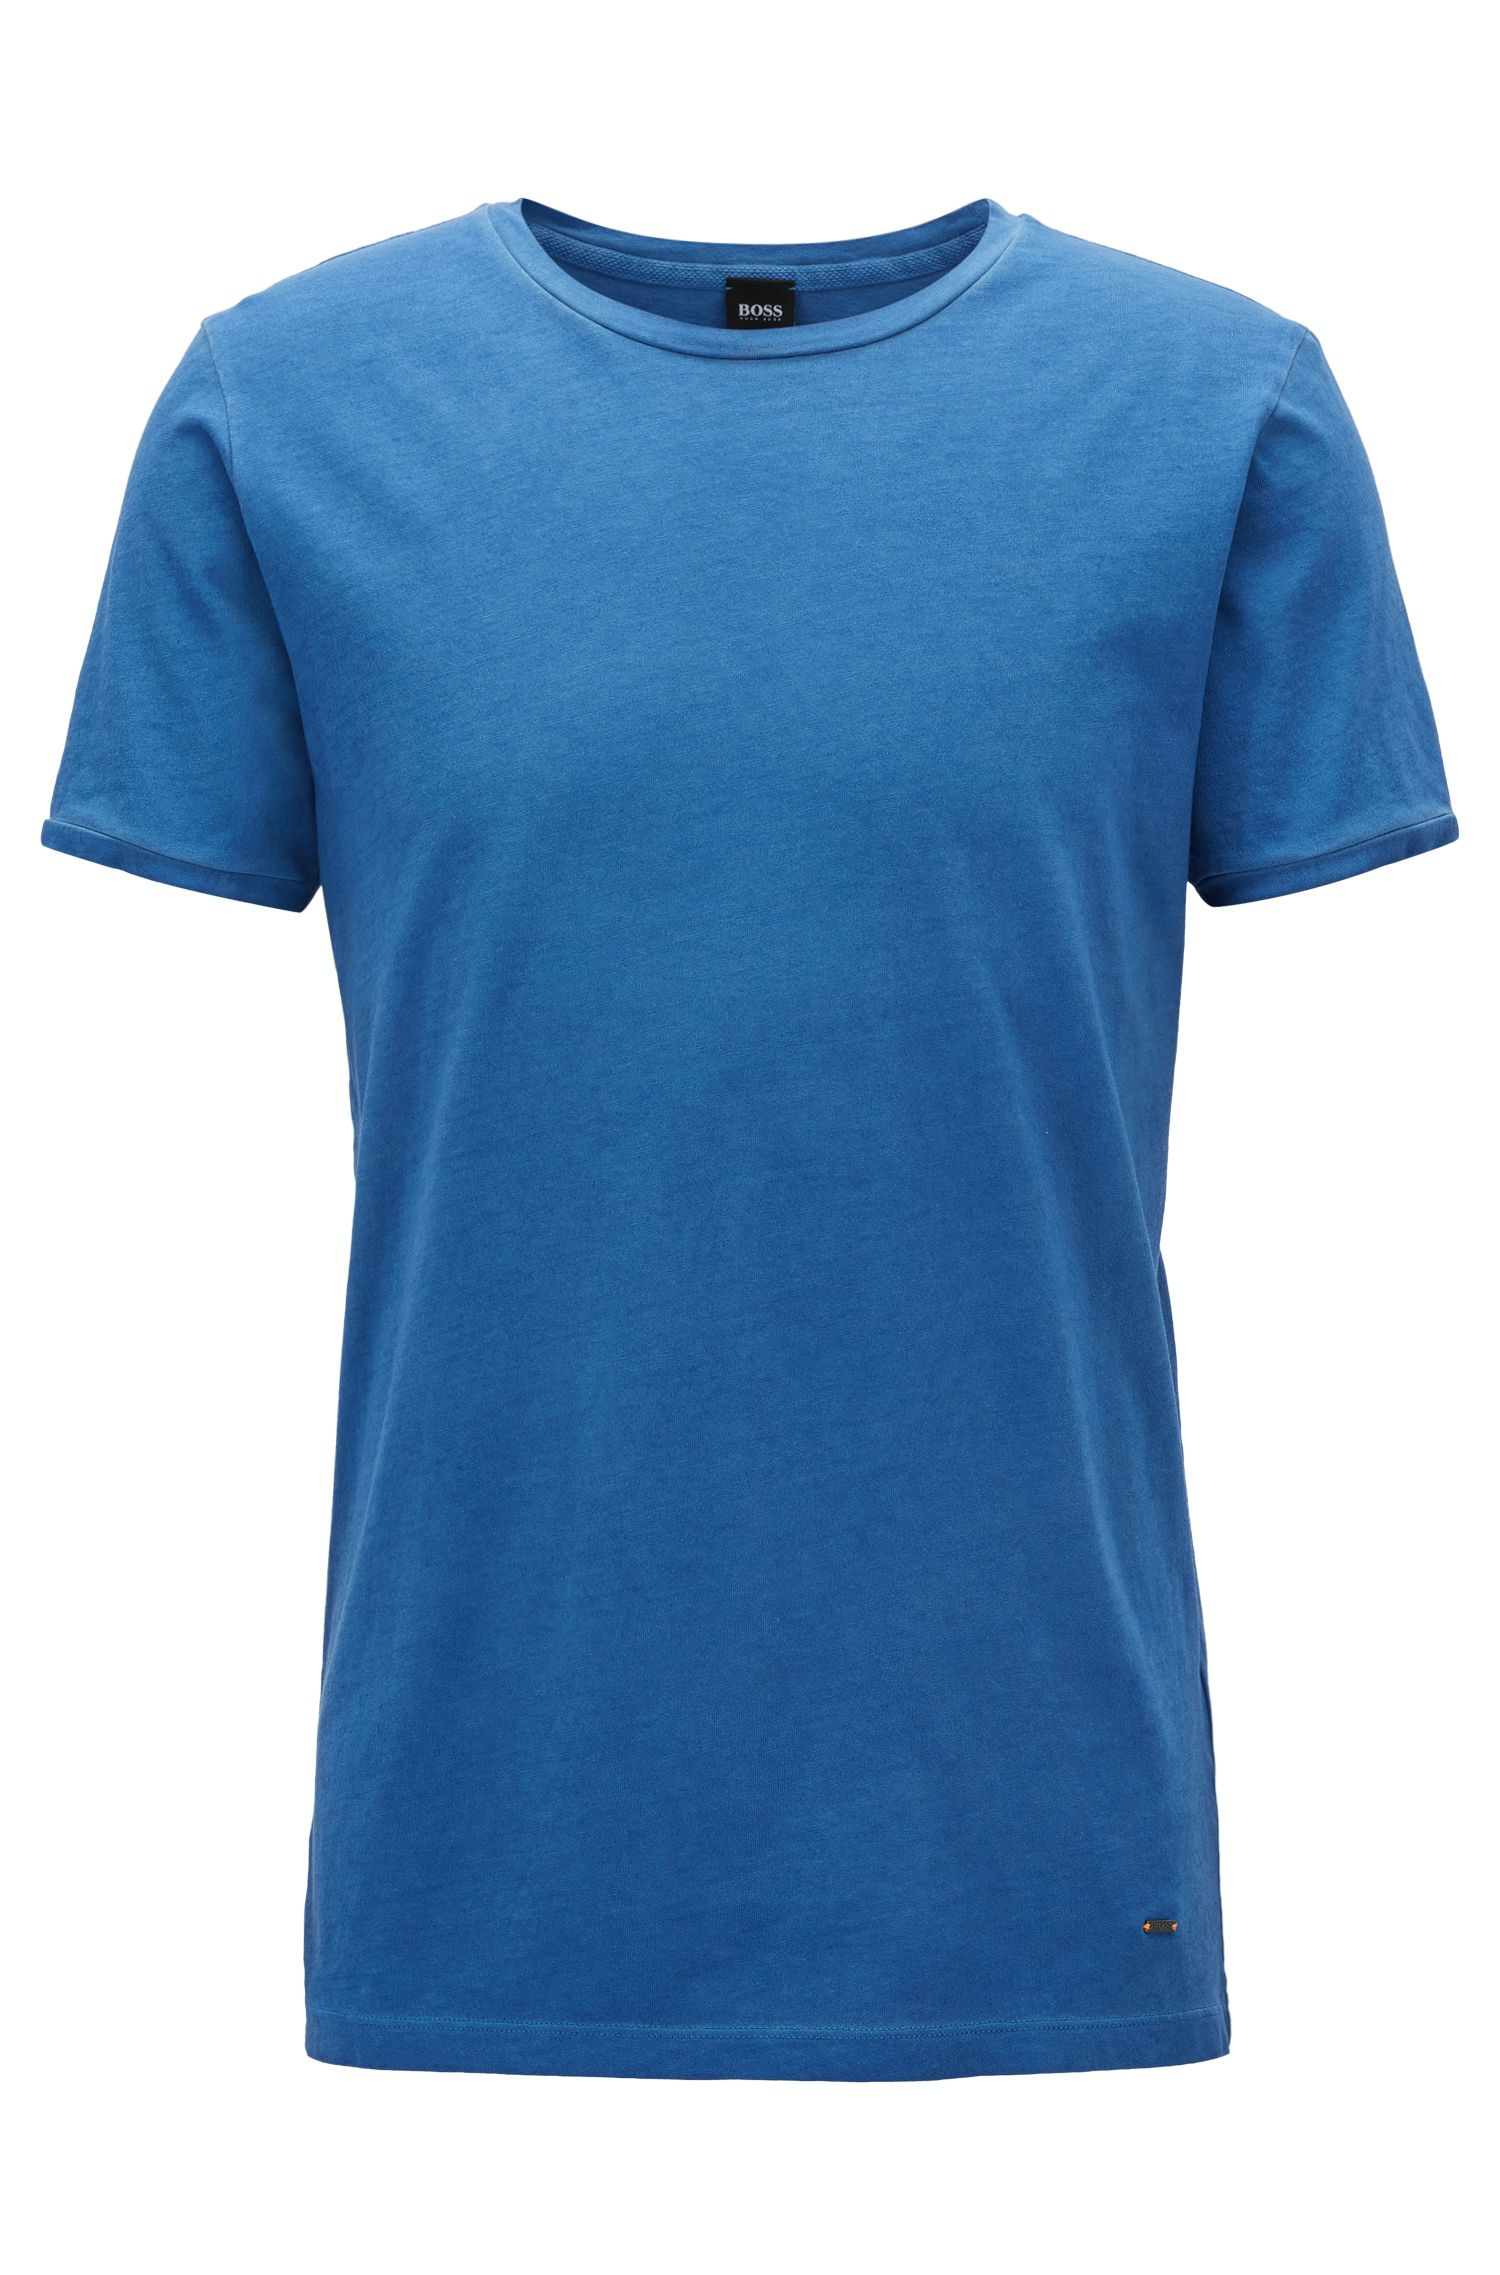 Regular-fit garment-dyed T-shirt in cotton